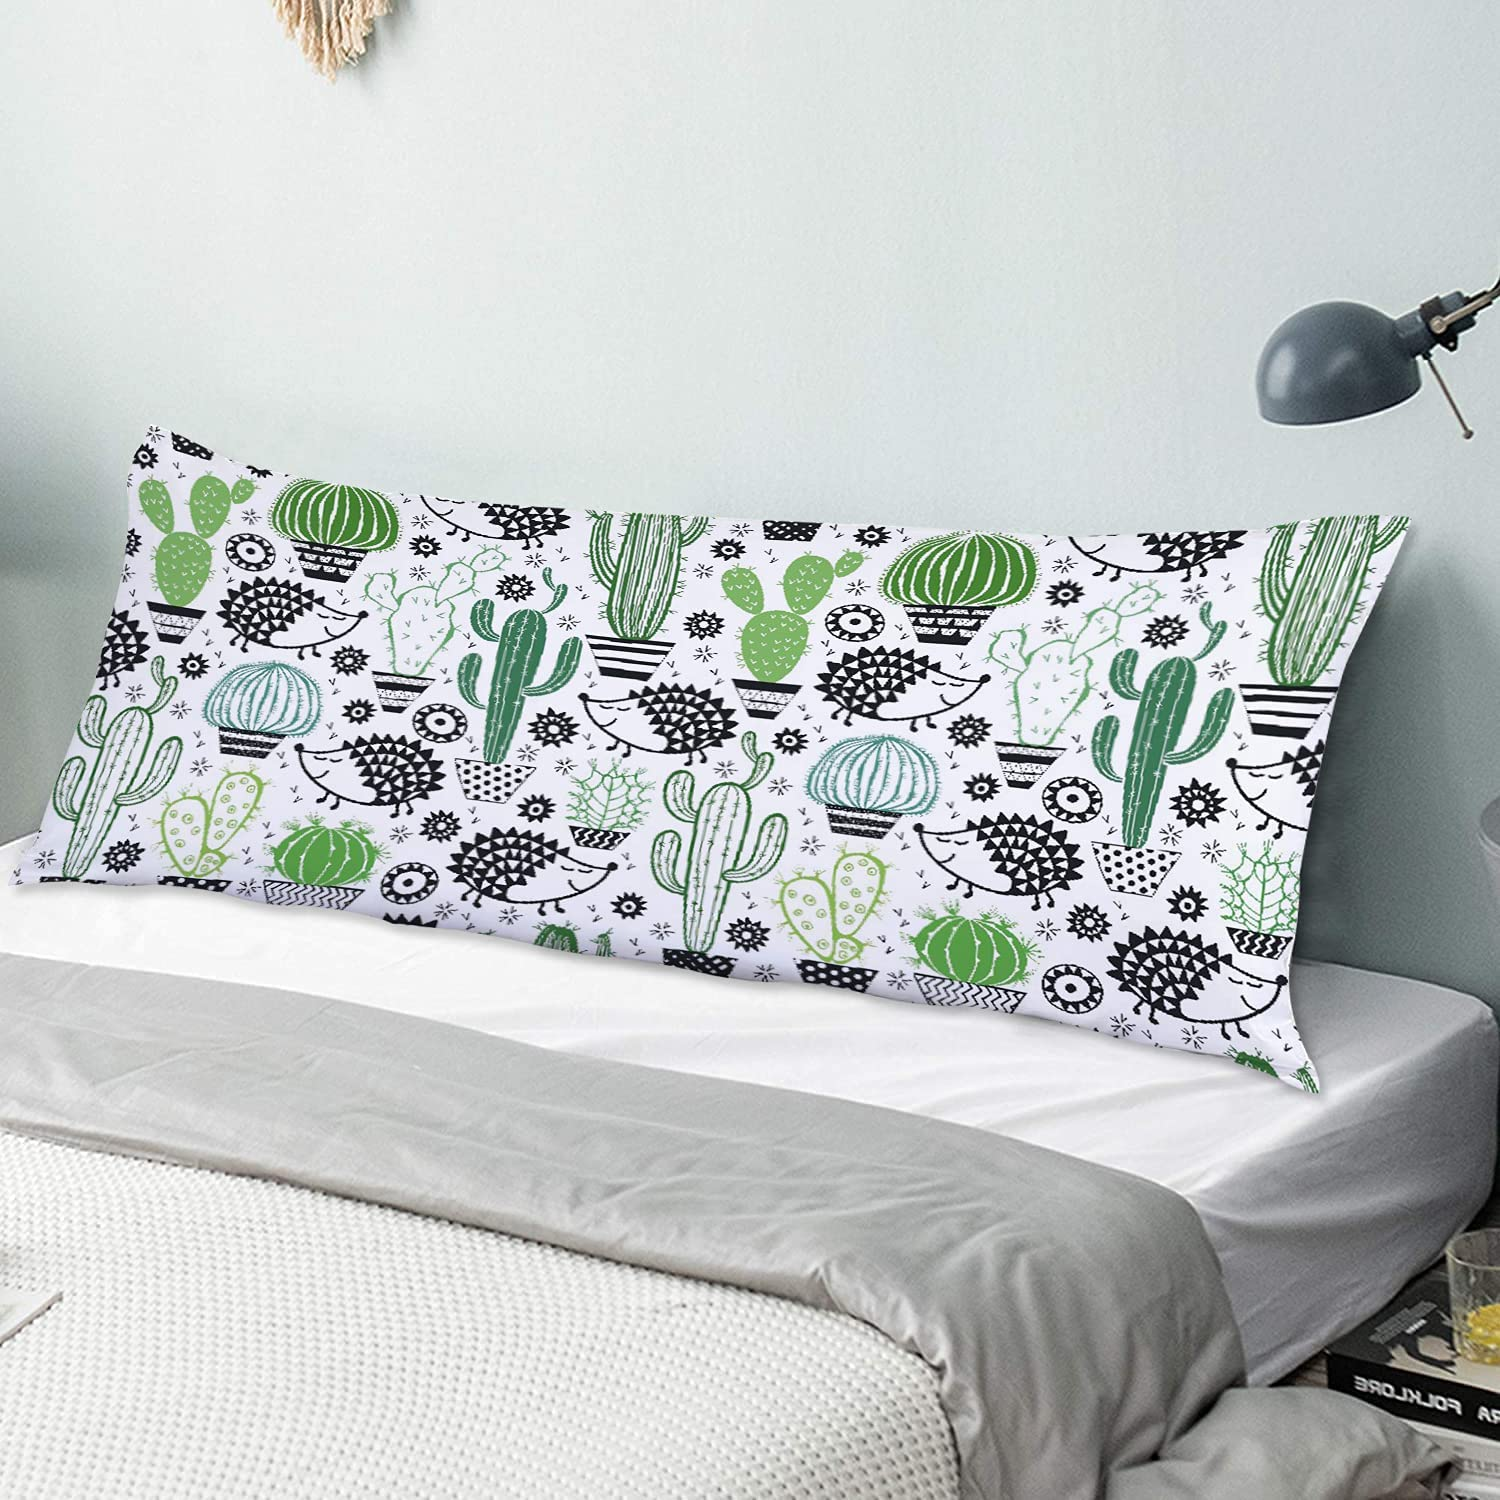 NINEHASA Body Pillow Pillowcase Floral with Recommendation De Cactuses Manufacturer direct delivery Seamless